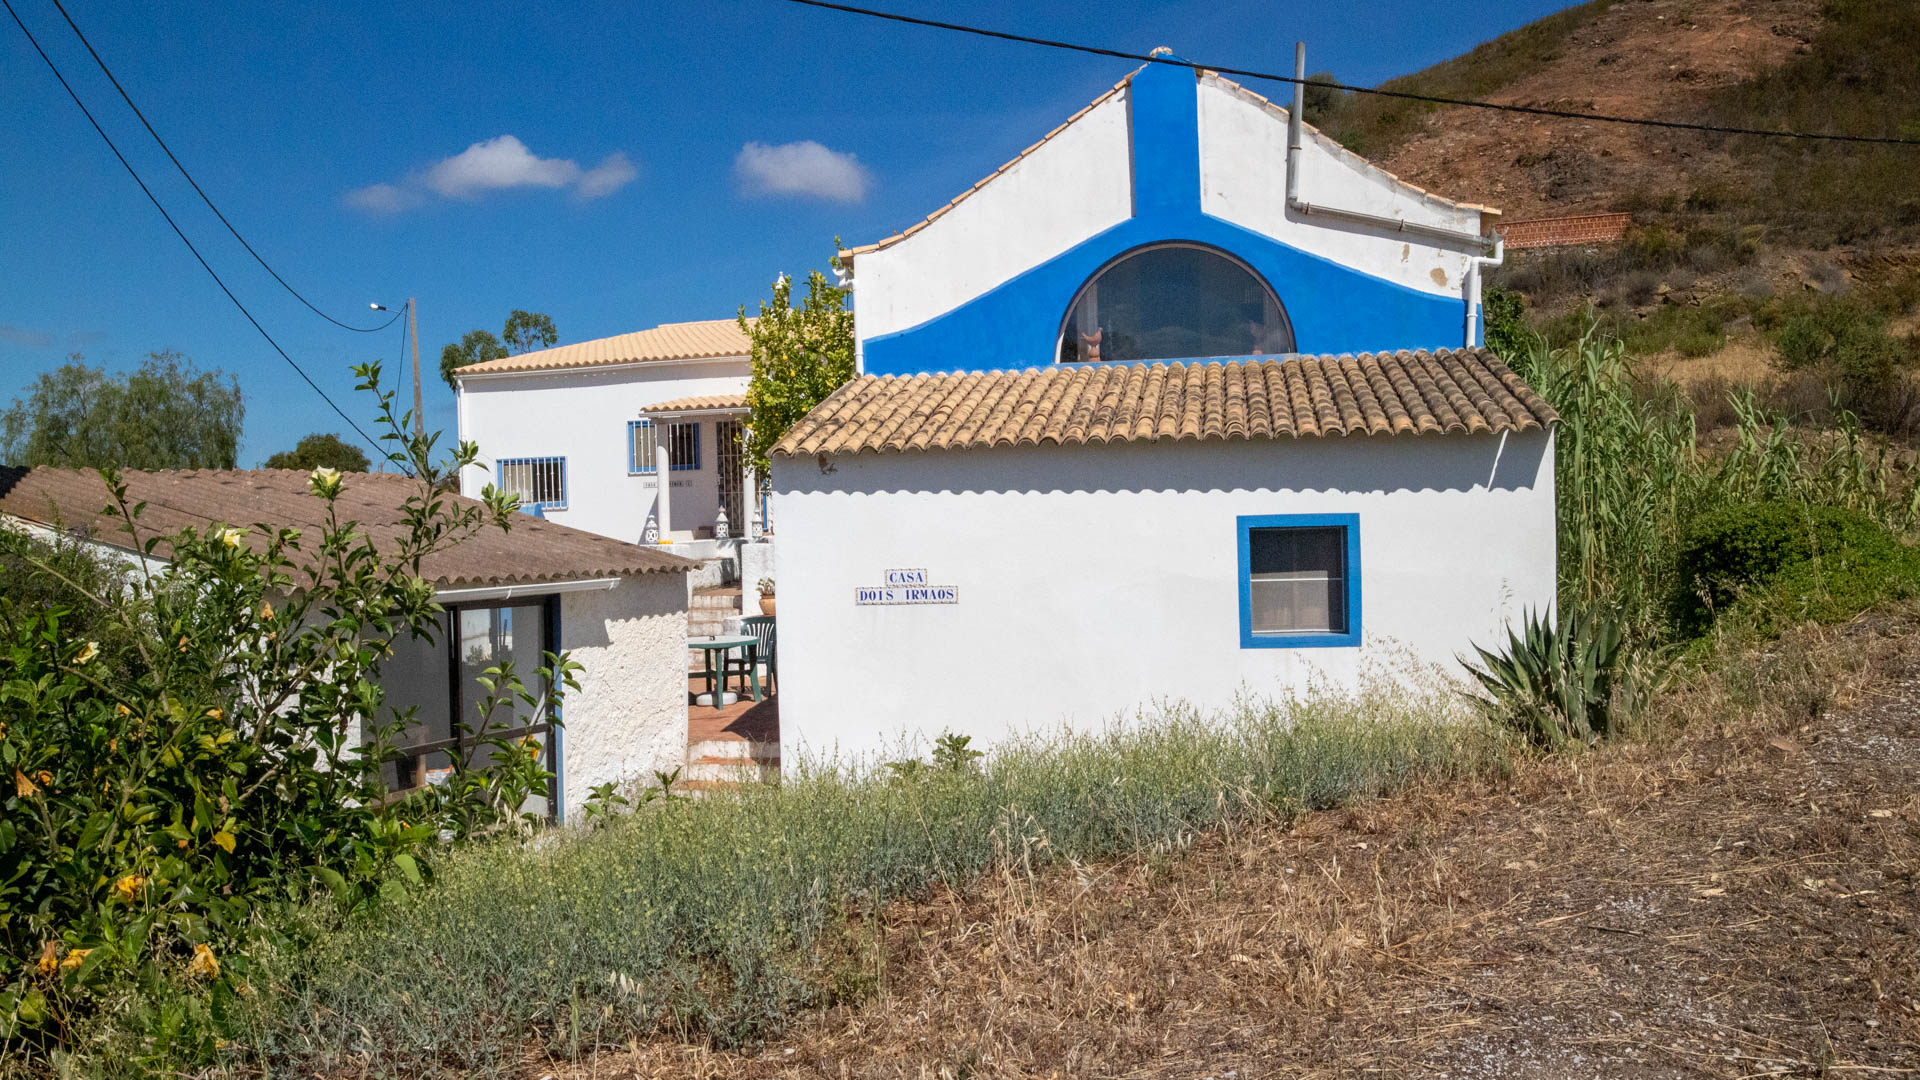 Two traditional houses - 2 Bedrooms and One Bedroom, perfect for B&B or rental opportunity, north of Tavira | TV816 Two traditional houses with rental potential, only 10 minutes from Tavira and the sea. It has a big plot and it's located in a quiet area.